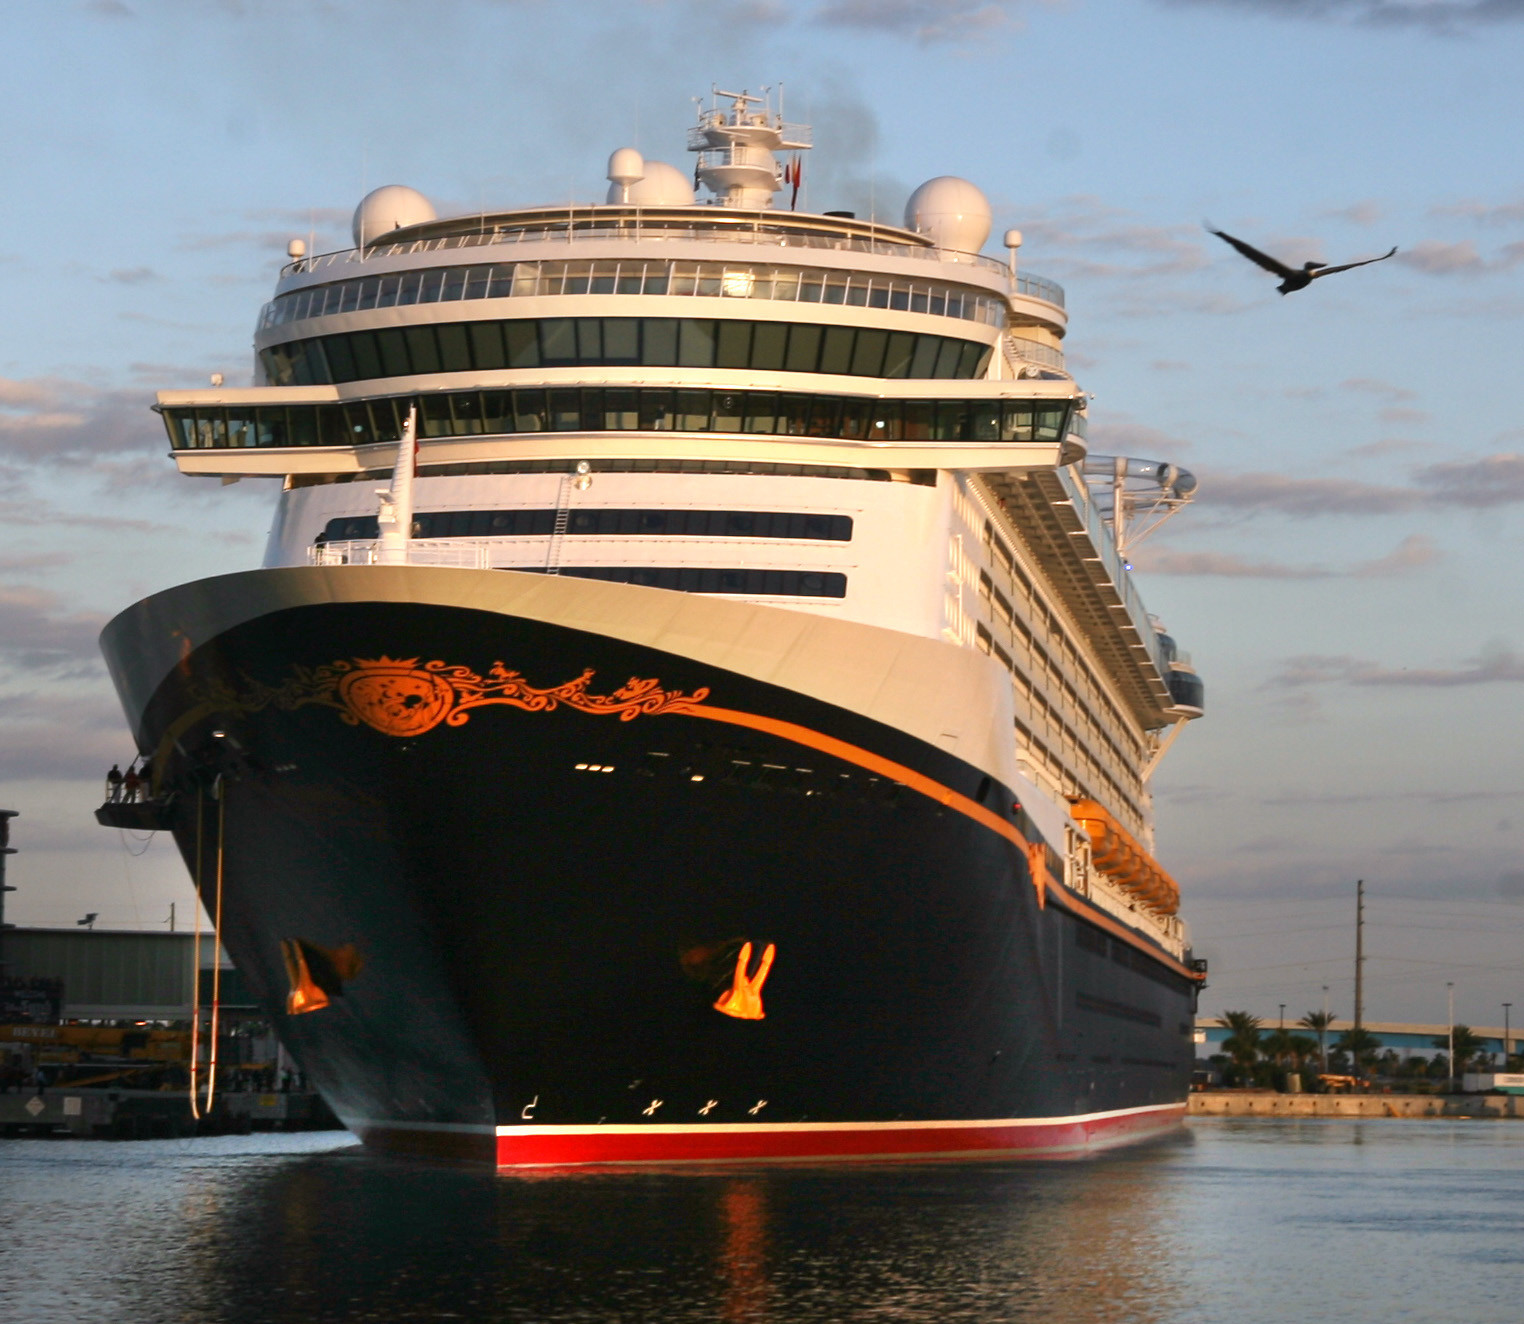 Florida Cruise Guide: Disney Fantasy pictures - Disney Fantasy arrives in Port Canaveral